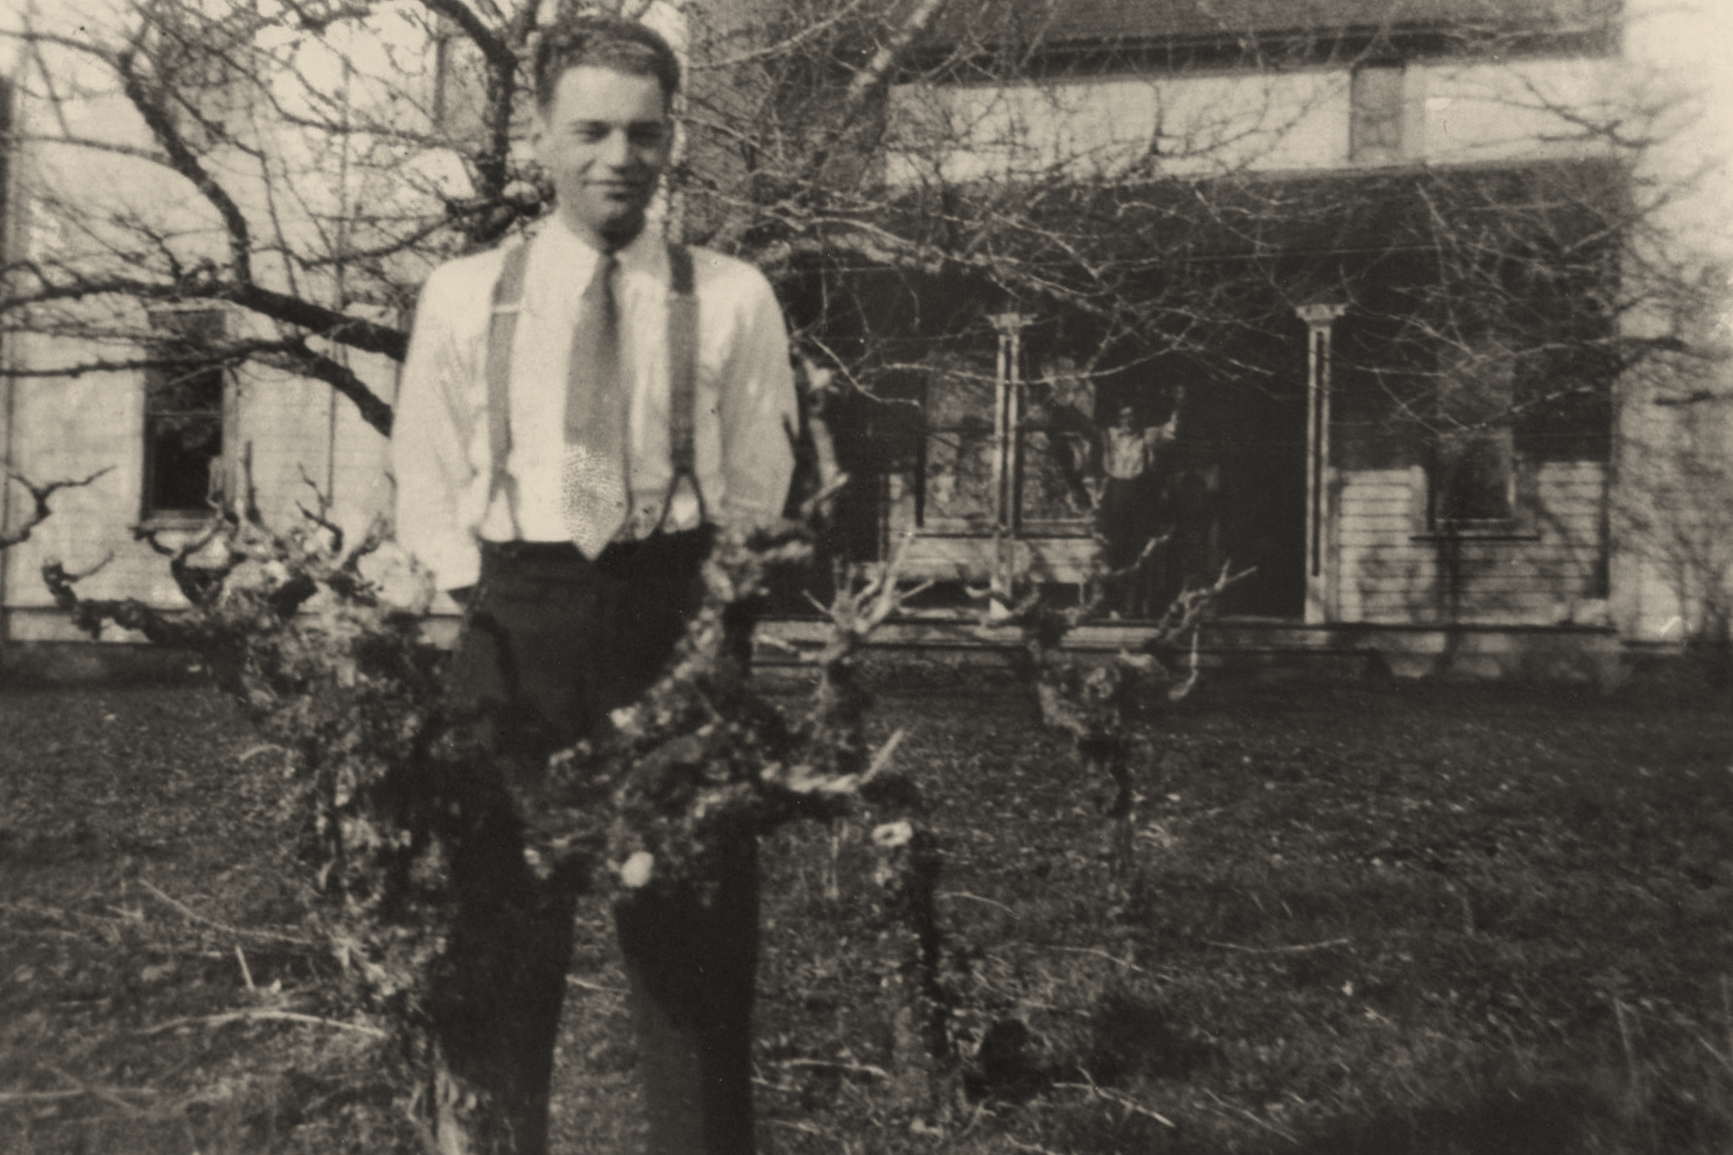 Date of image unknown, Ernest Rueter in front of vines, Adolf on porch.